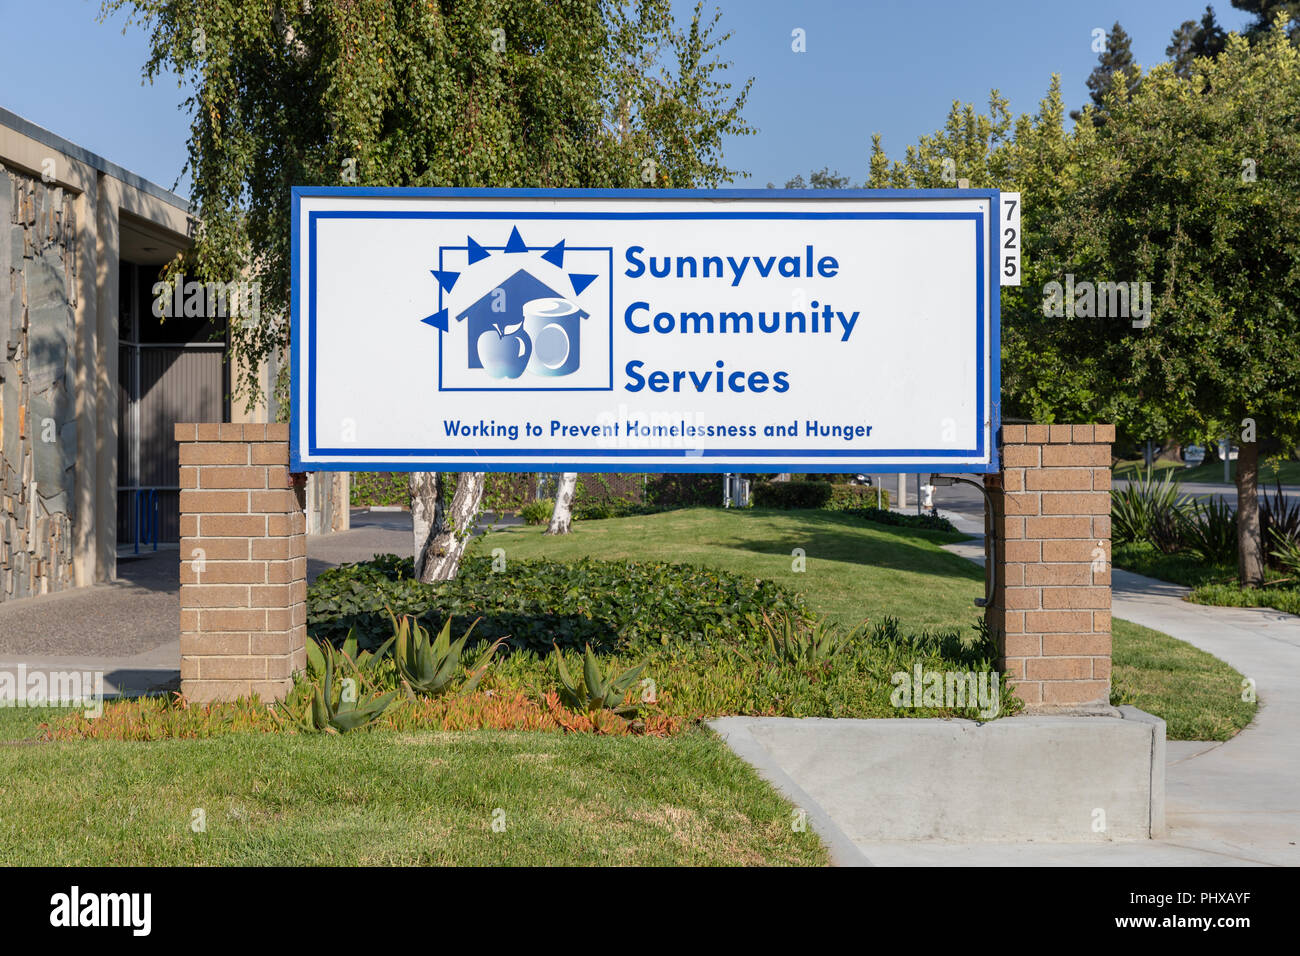 Sunnyvale Community Services – Working to Prevent Homelessness and Hunger, sign; Sunnyvale, California - Stock Image